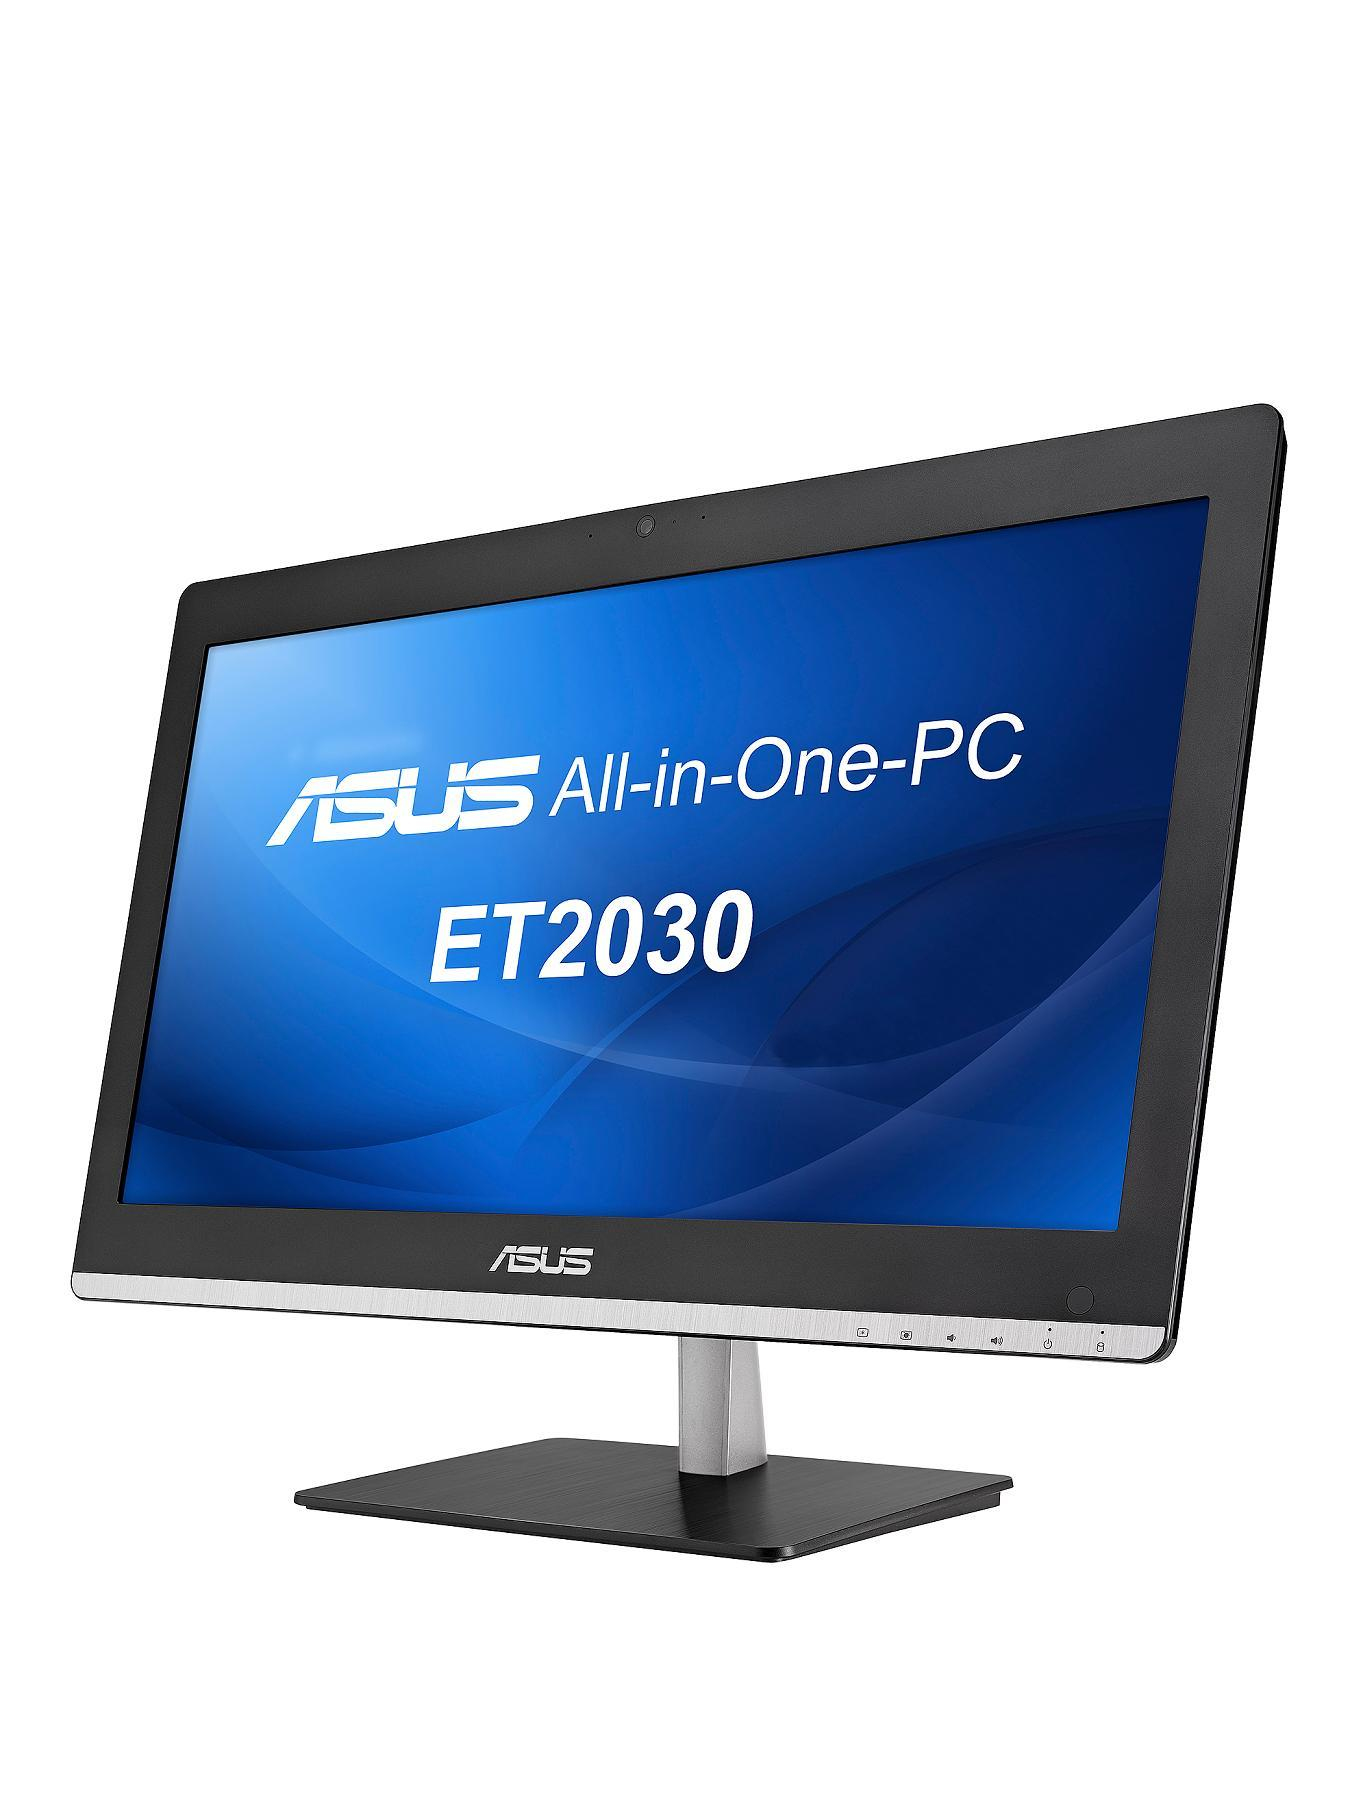 Asus ET2031IUK Intel Pentium Processor, 4GB RAM, 500GB Hard Drive, Wifi, 20 inch, All In One Desktop - Black/Silver